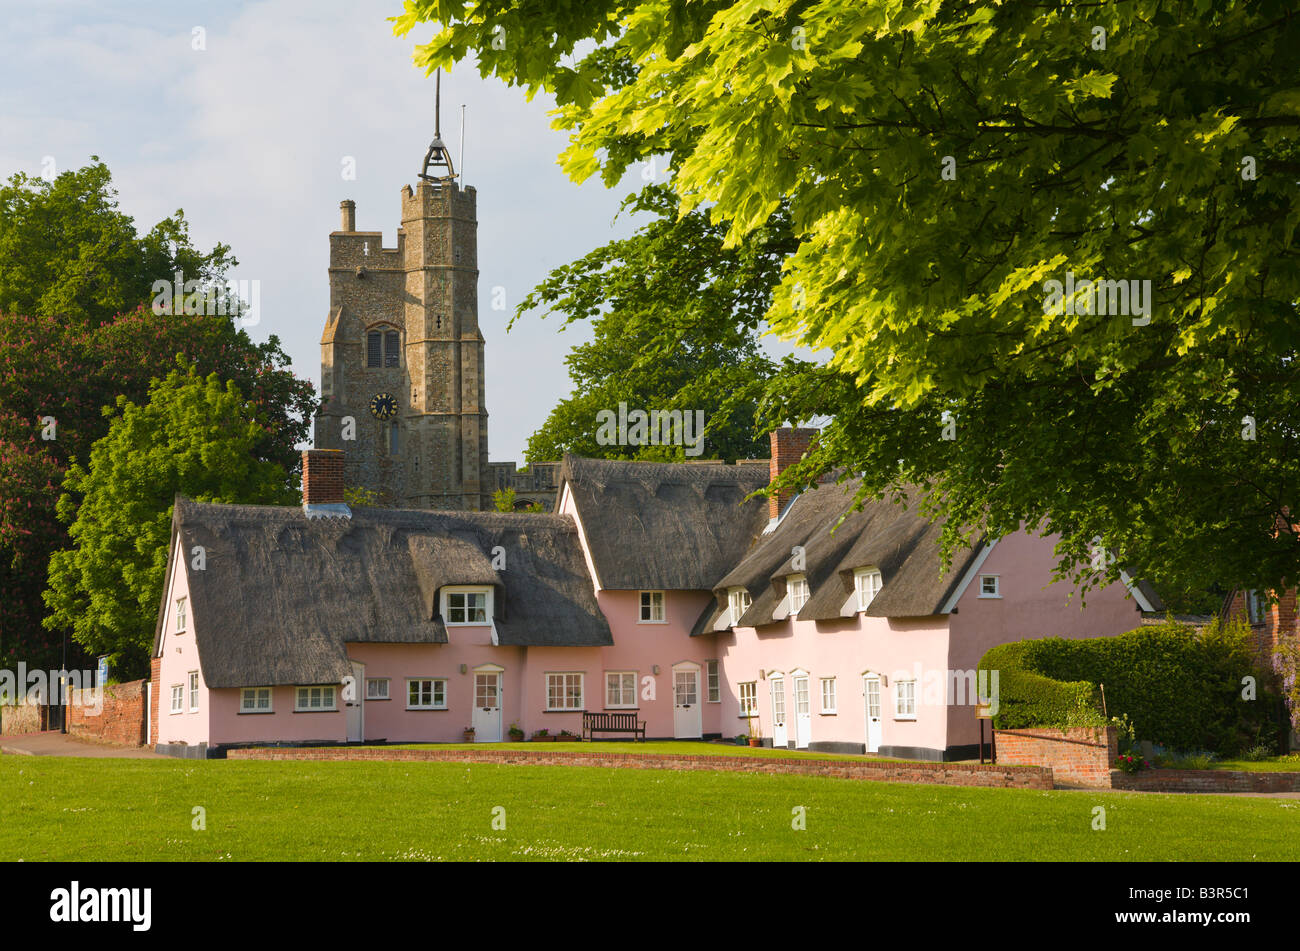 Church and thatched pink cottages, Cavendish, Suffolk, England - Stock Image